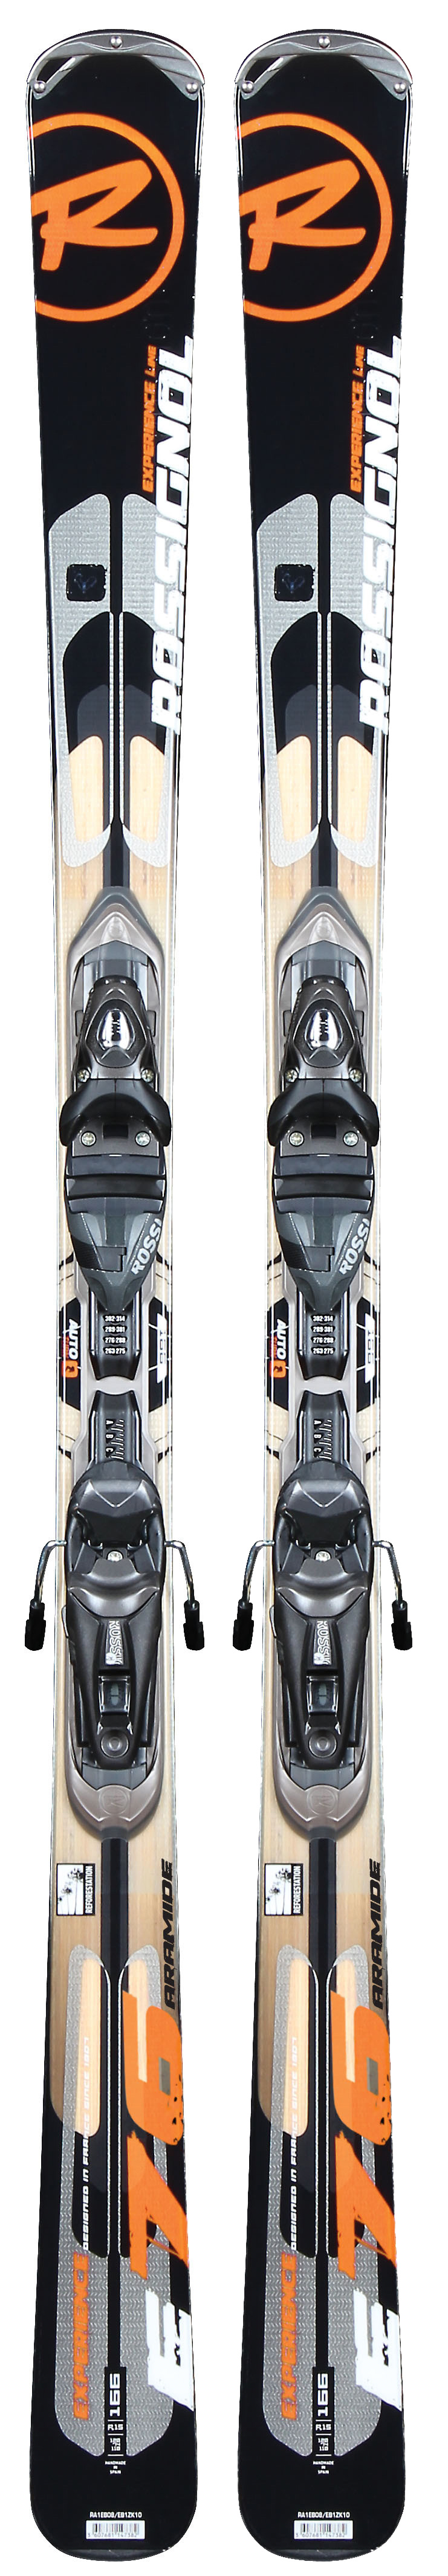 "Ski Experience is the gold standard of a brand new breed of all- mountain performance skis. Experience features all of the latest technologies and designs to deliver more on-trail and off-trail performance, greater versatility and more maneuverability to skiers of all levels than any other ski ever. Experience's unique combination of AutoTurn Rocker, Extended Sidecut, Cascade Tip and wider waist widths delivers easier turning and carving on groomers and in powder, more stability in all conditions, and an enhanced ski experience beyond compare. Never before has an all-mountain ski performed so well and so easily in all terrain types and in any conditions. Developed for skiers of all levels for top performance in all conditions. experience the newest benchmark in ""one-ski-quiver.""Key Features of the Rossignol Experience 76 Aramide Tp12 Skis w/ Axium 110 Bindings: AutoTurn Rocker: 70% traditional, high camber underfoot while remaining 30% of the tip and tail feature low rocker. Camber underfoot delivers power, energy, and edge grip for groomed run performance. Subtle rocker tip and tail delivers easy steering and effortless speed control for versatility in any terrain or snow type Extended Sidecut: Sidecut continues beyond contact point where tip and tail rocker start as speeds and edge angles increase more sidecut is engaged for powerful full-length edge grip. At lower speeds and edge angles sidecut is less engaged for more maneuverability and ease Structure: Rossitop Cap Core: Wood Laminates: Aramide/Fiberglass Sidecut: 121/76/111 Radius: 17.2M @ 176 Size: 136, 146, 156, 166, 176 System: Tpi2/Axium 110 L - $324.95"